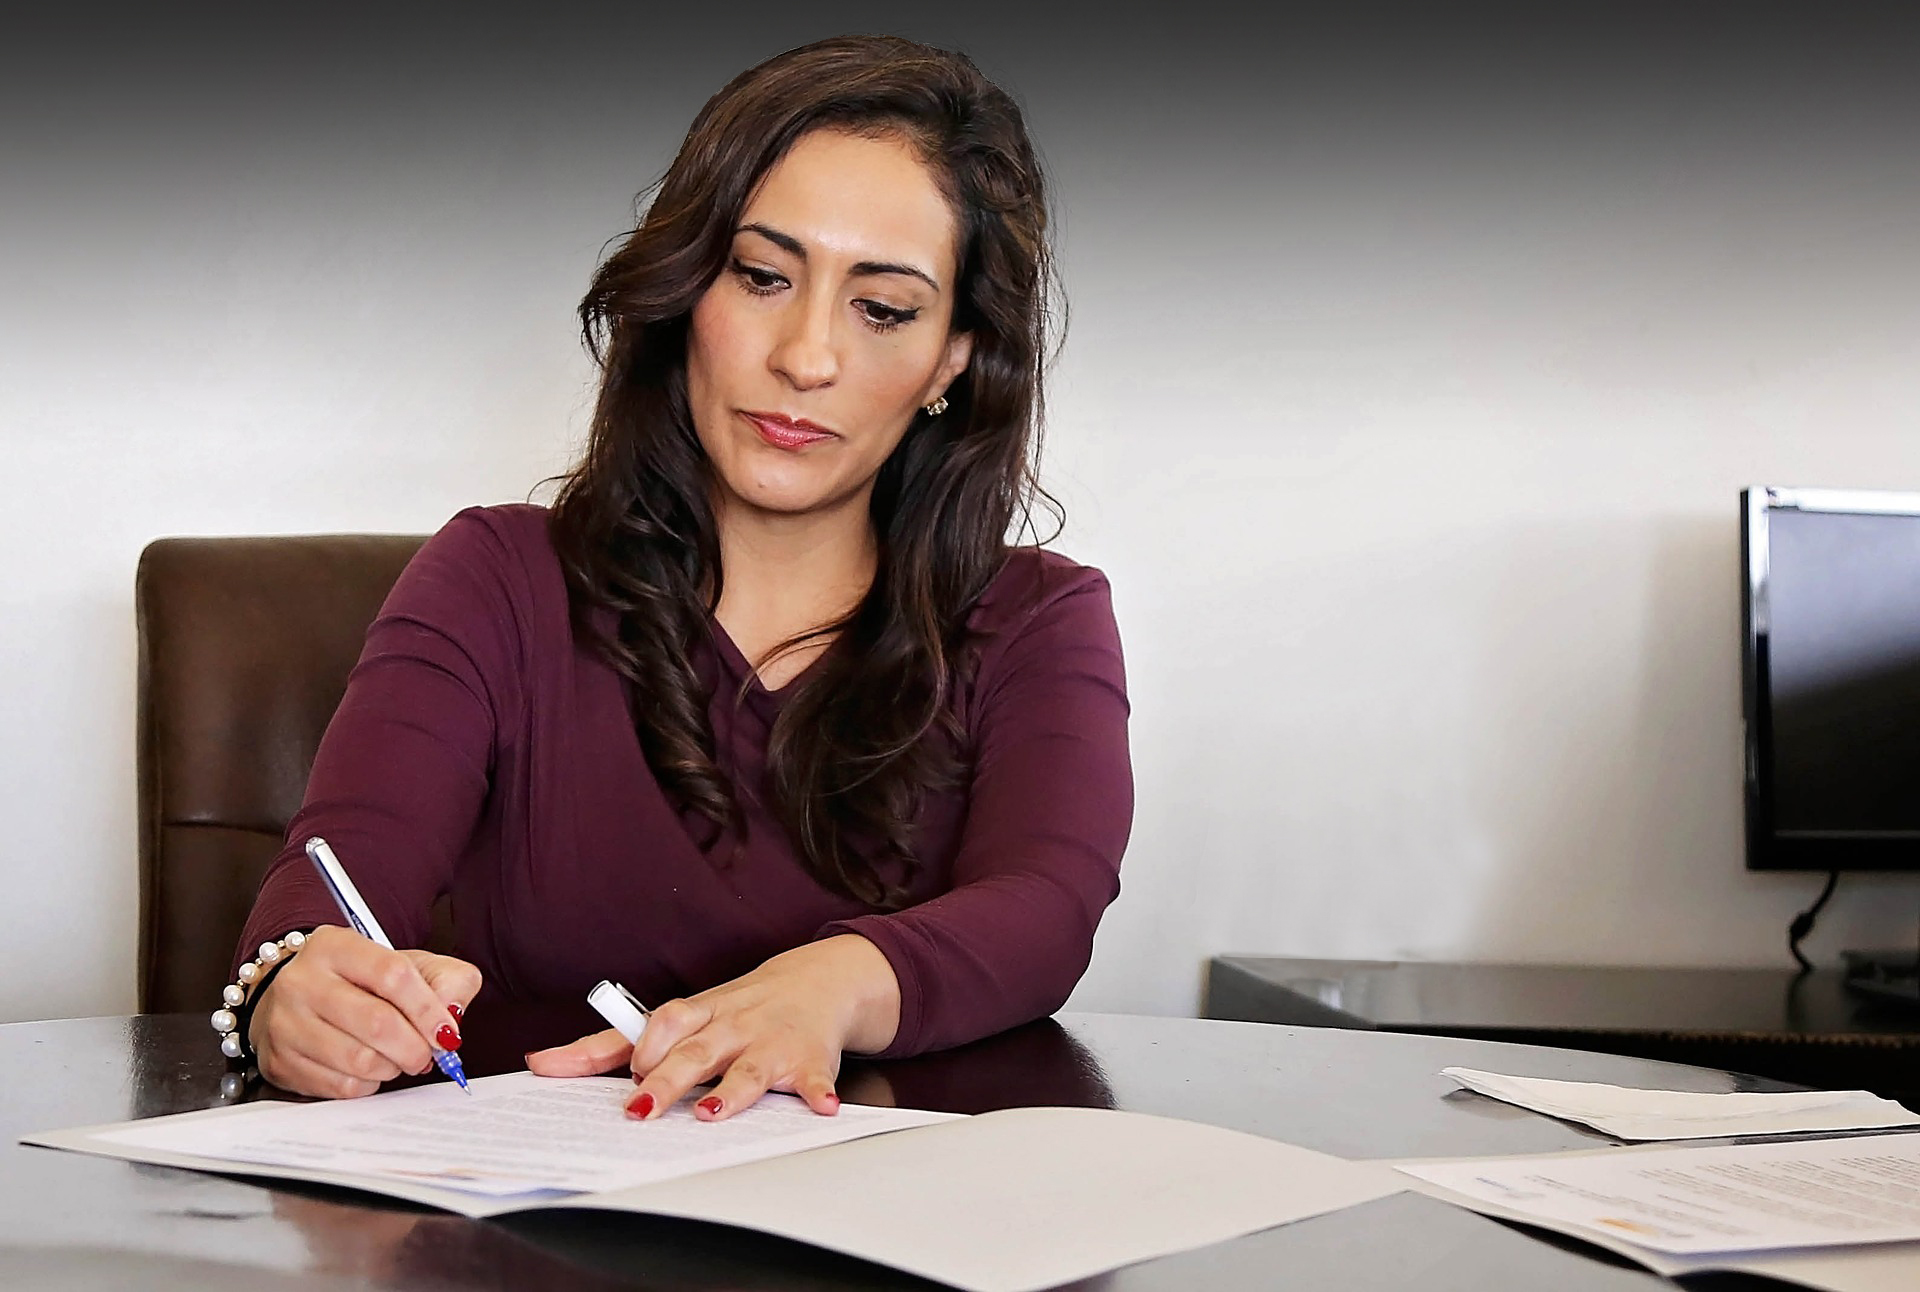 Woman writing on documents